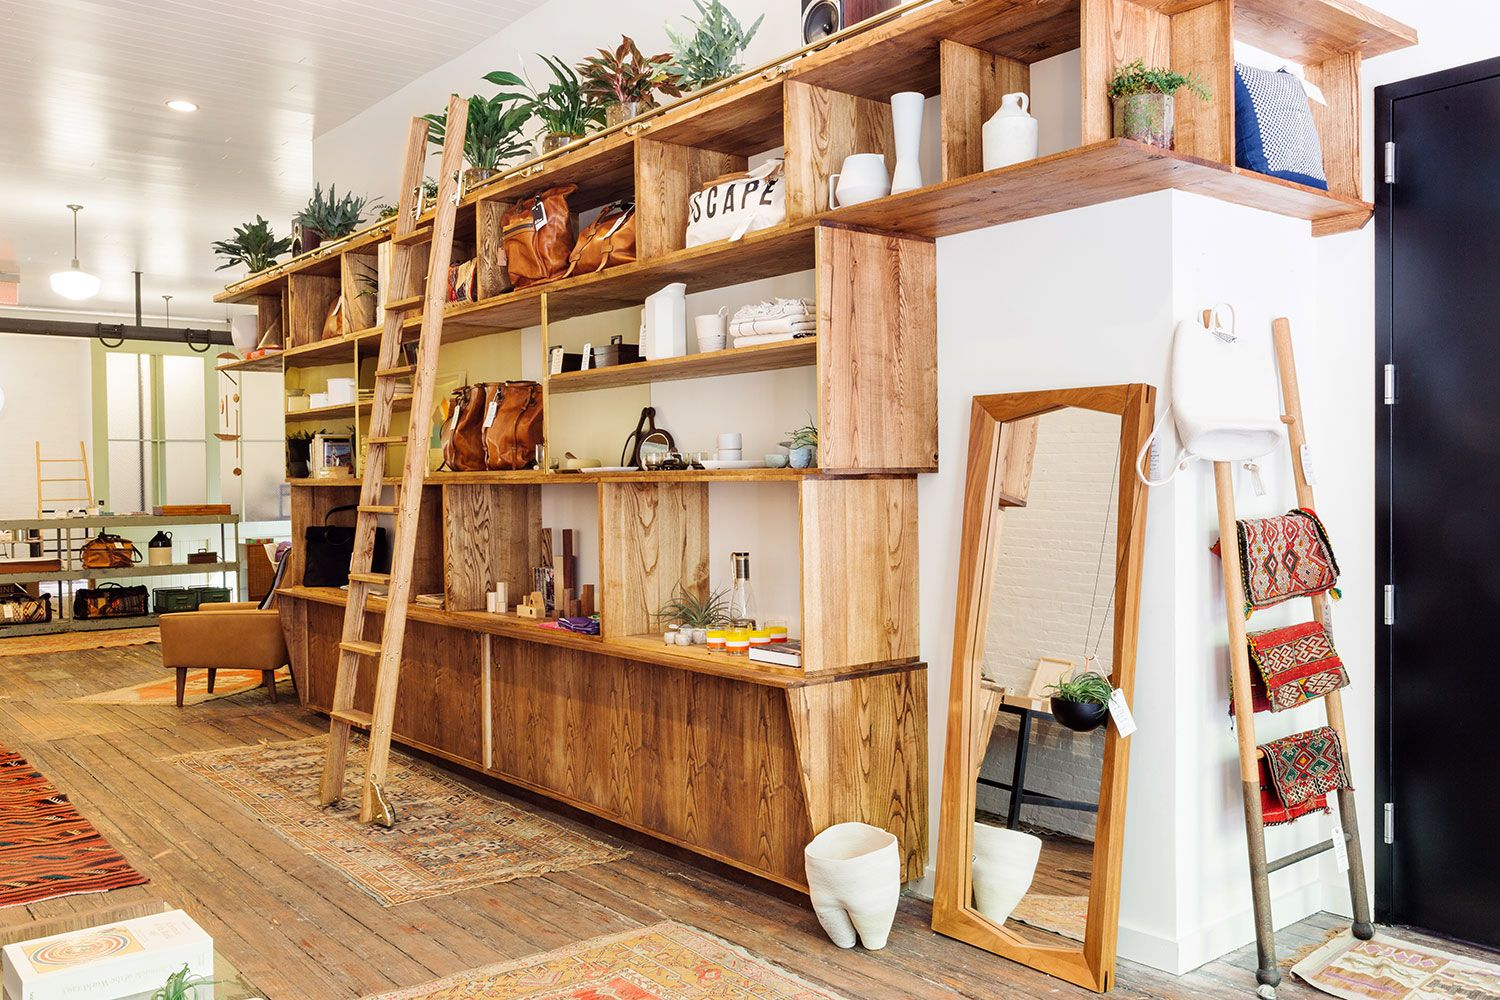 Village home interior design calliope a sanctuary for found objects and cool vibes  west